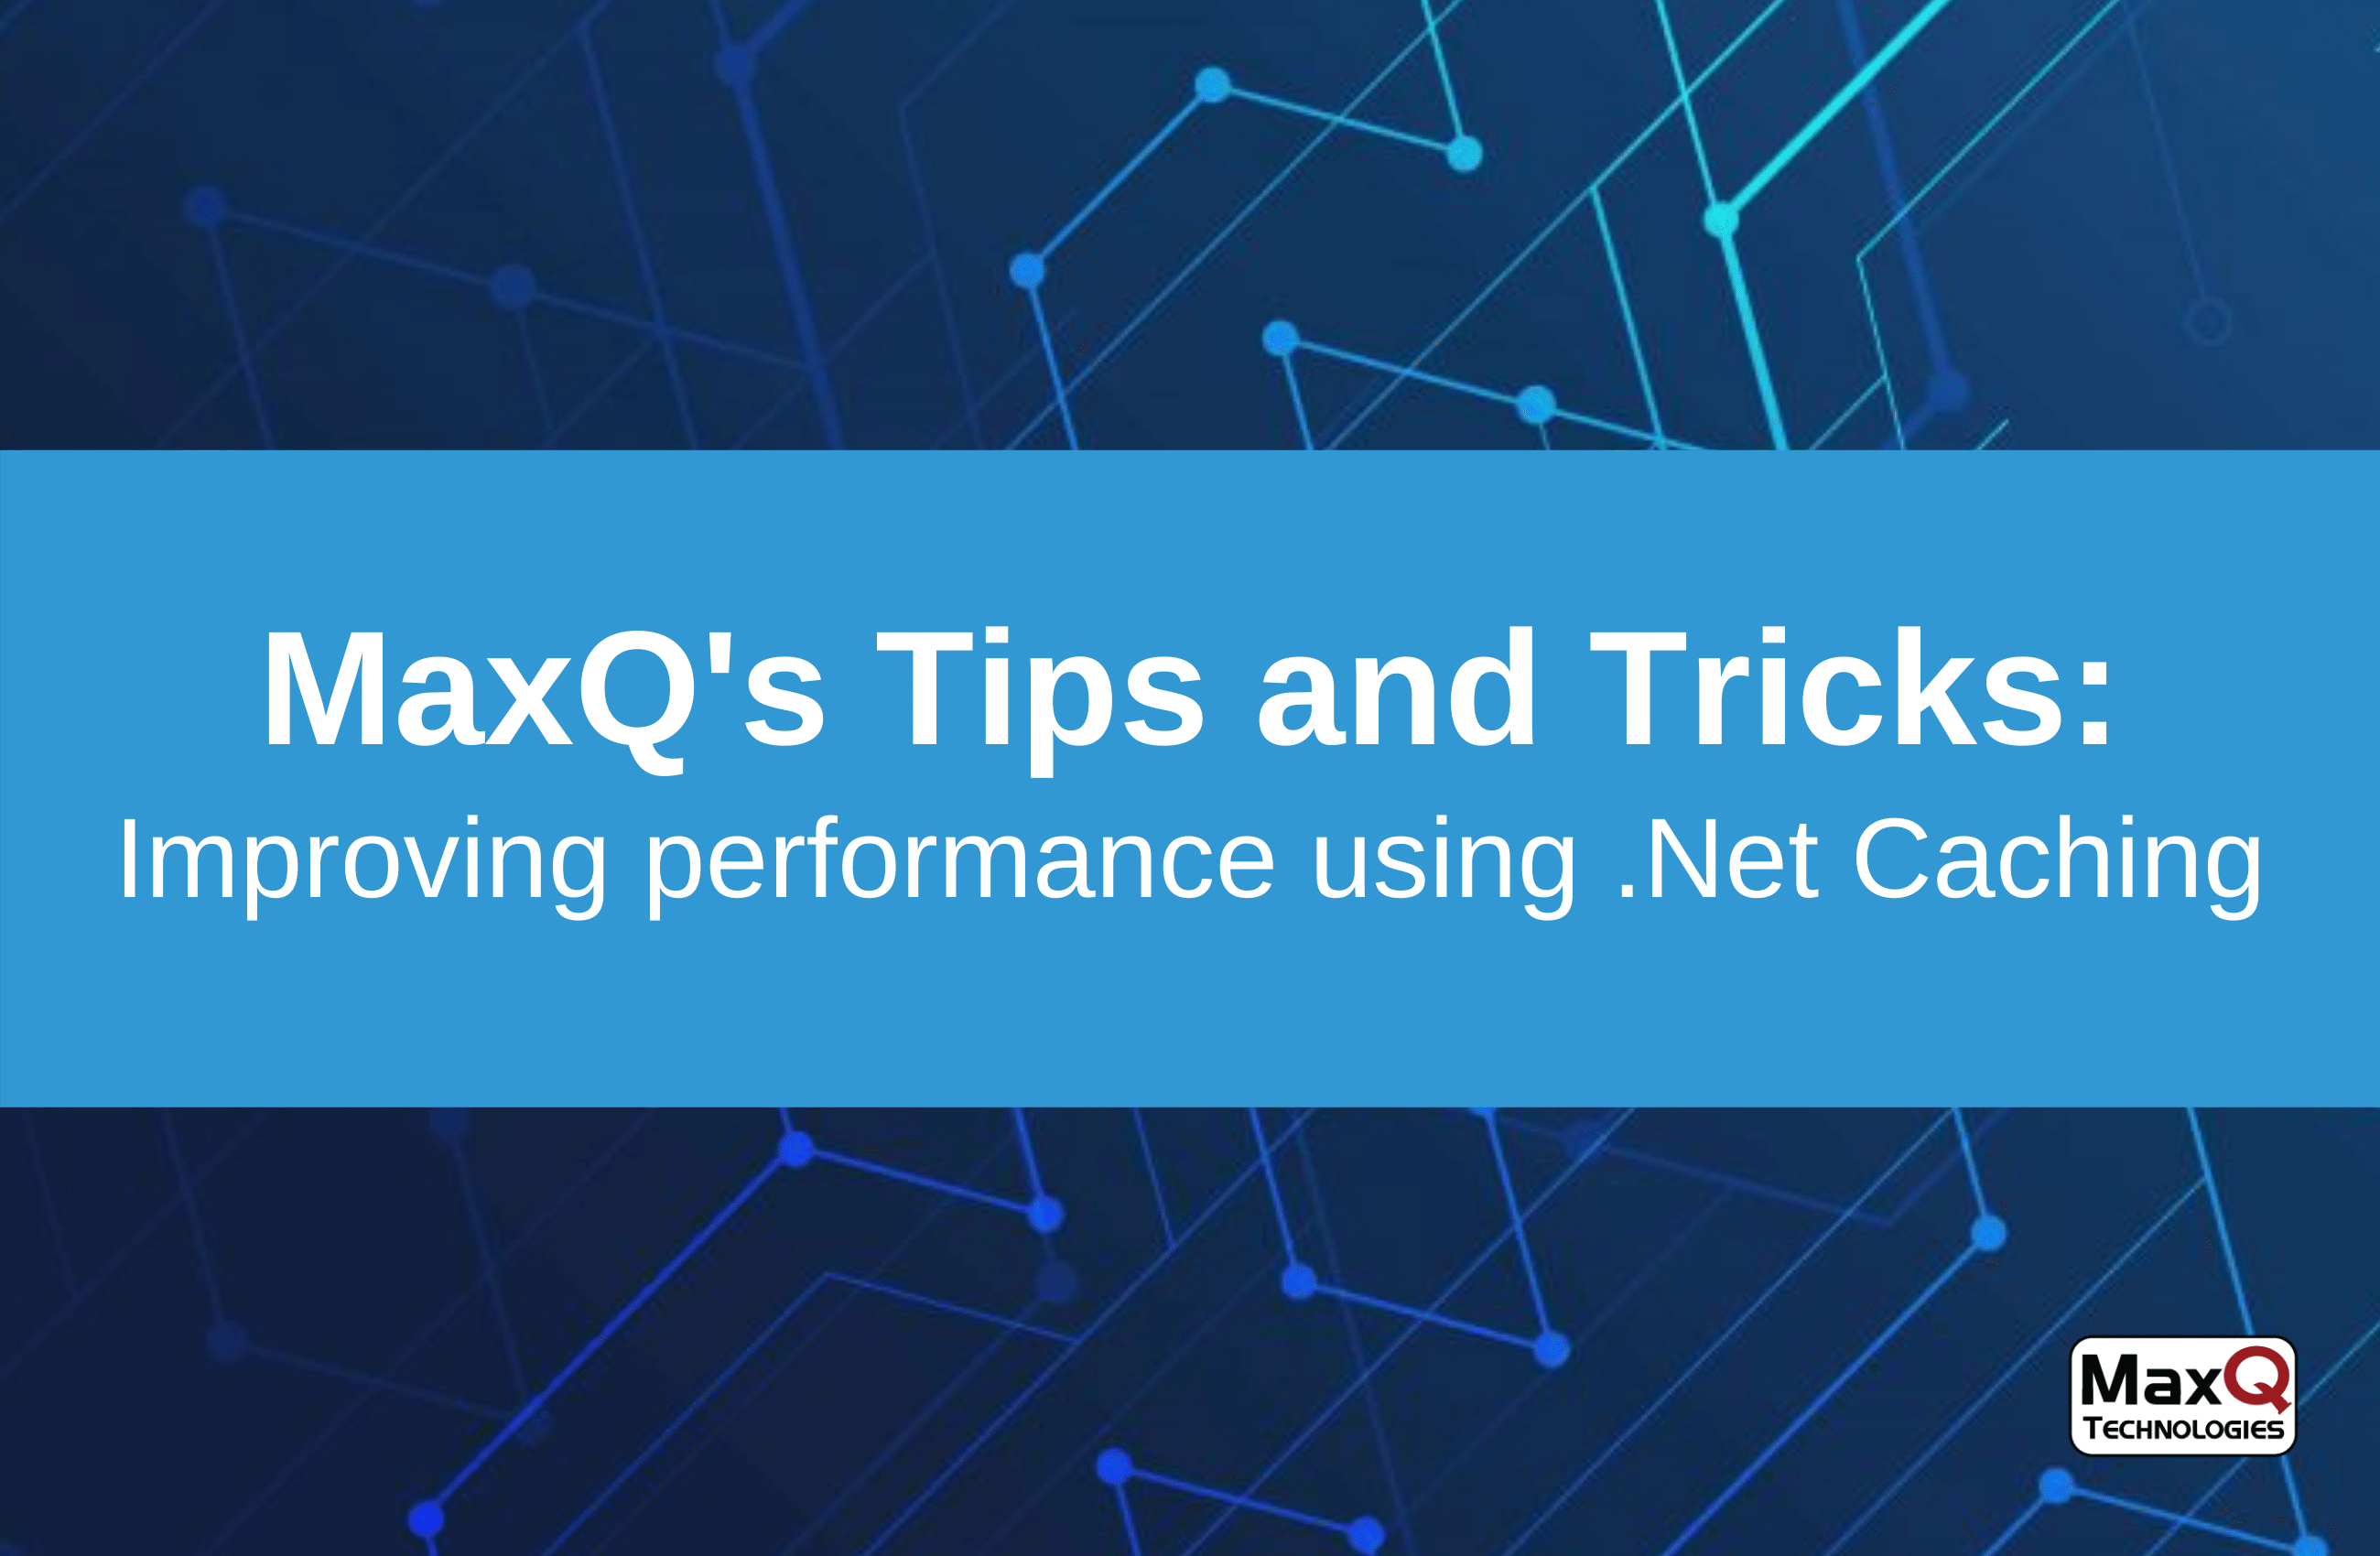 Improving performance using .Net Caching